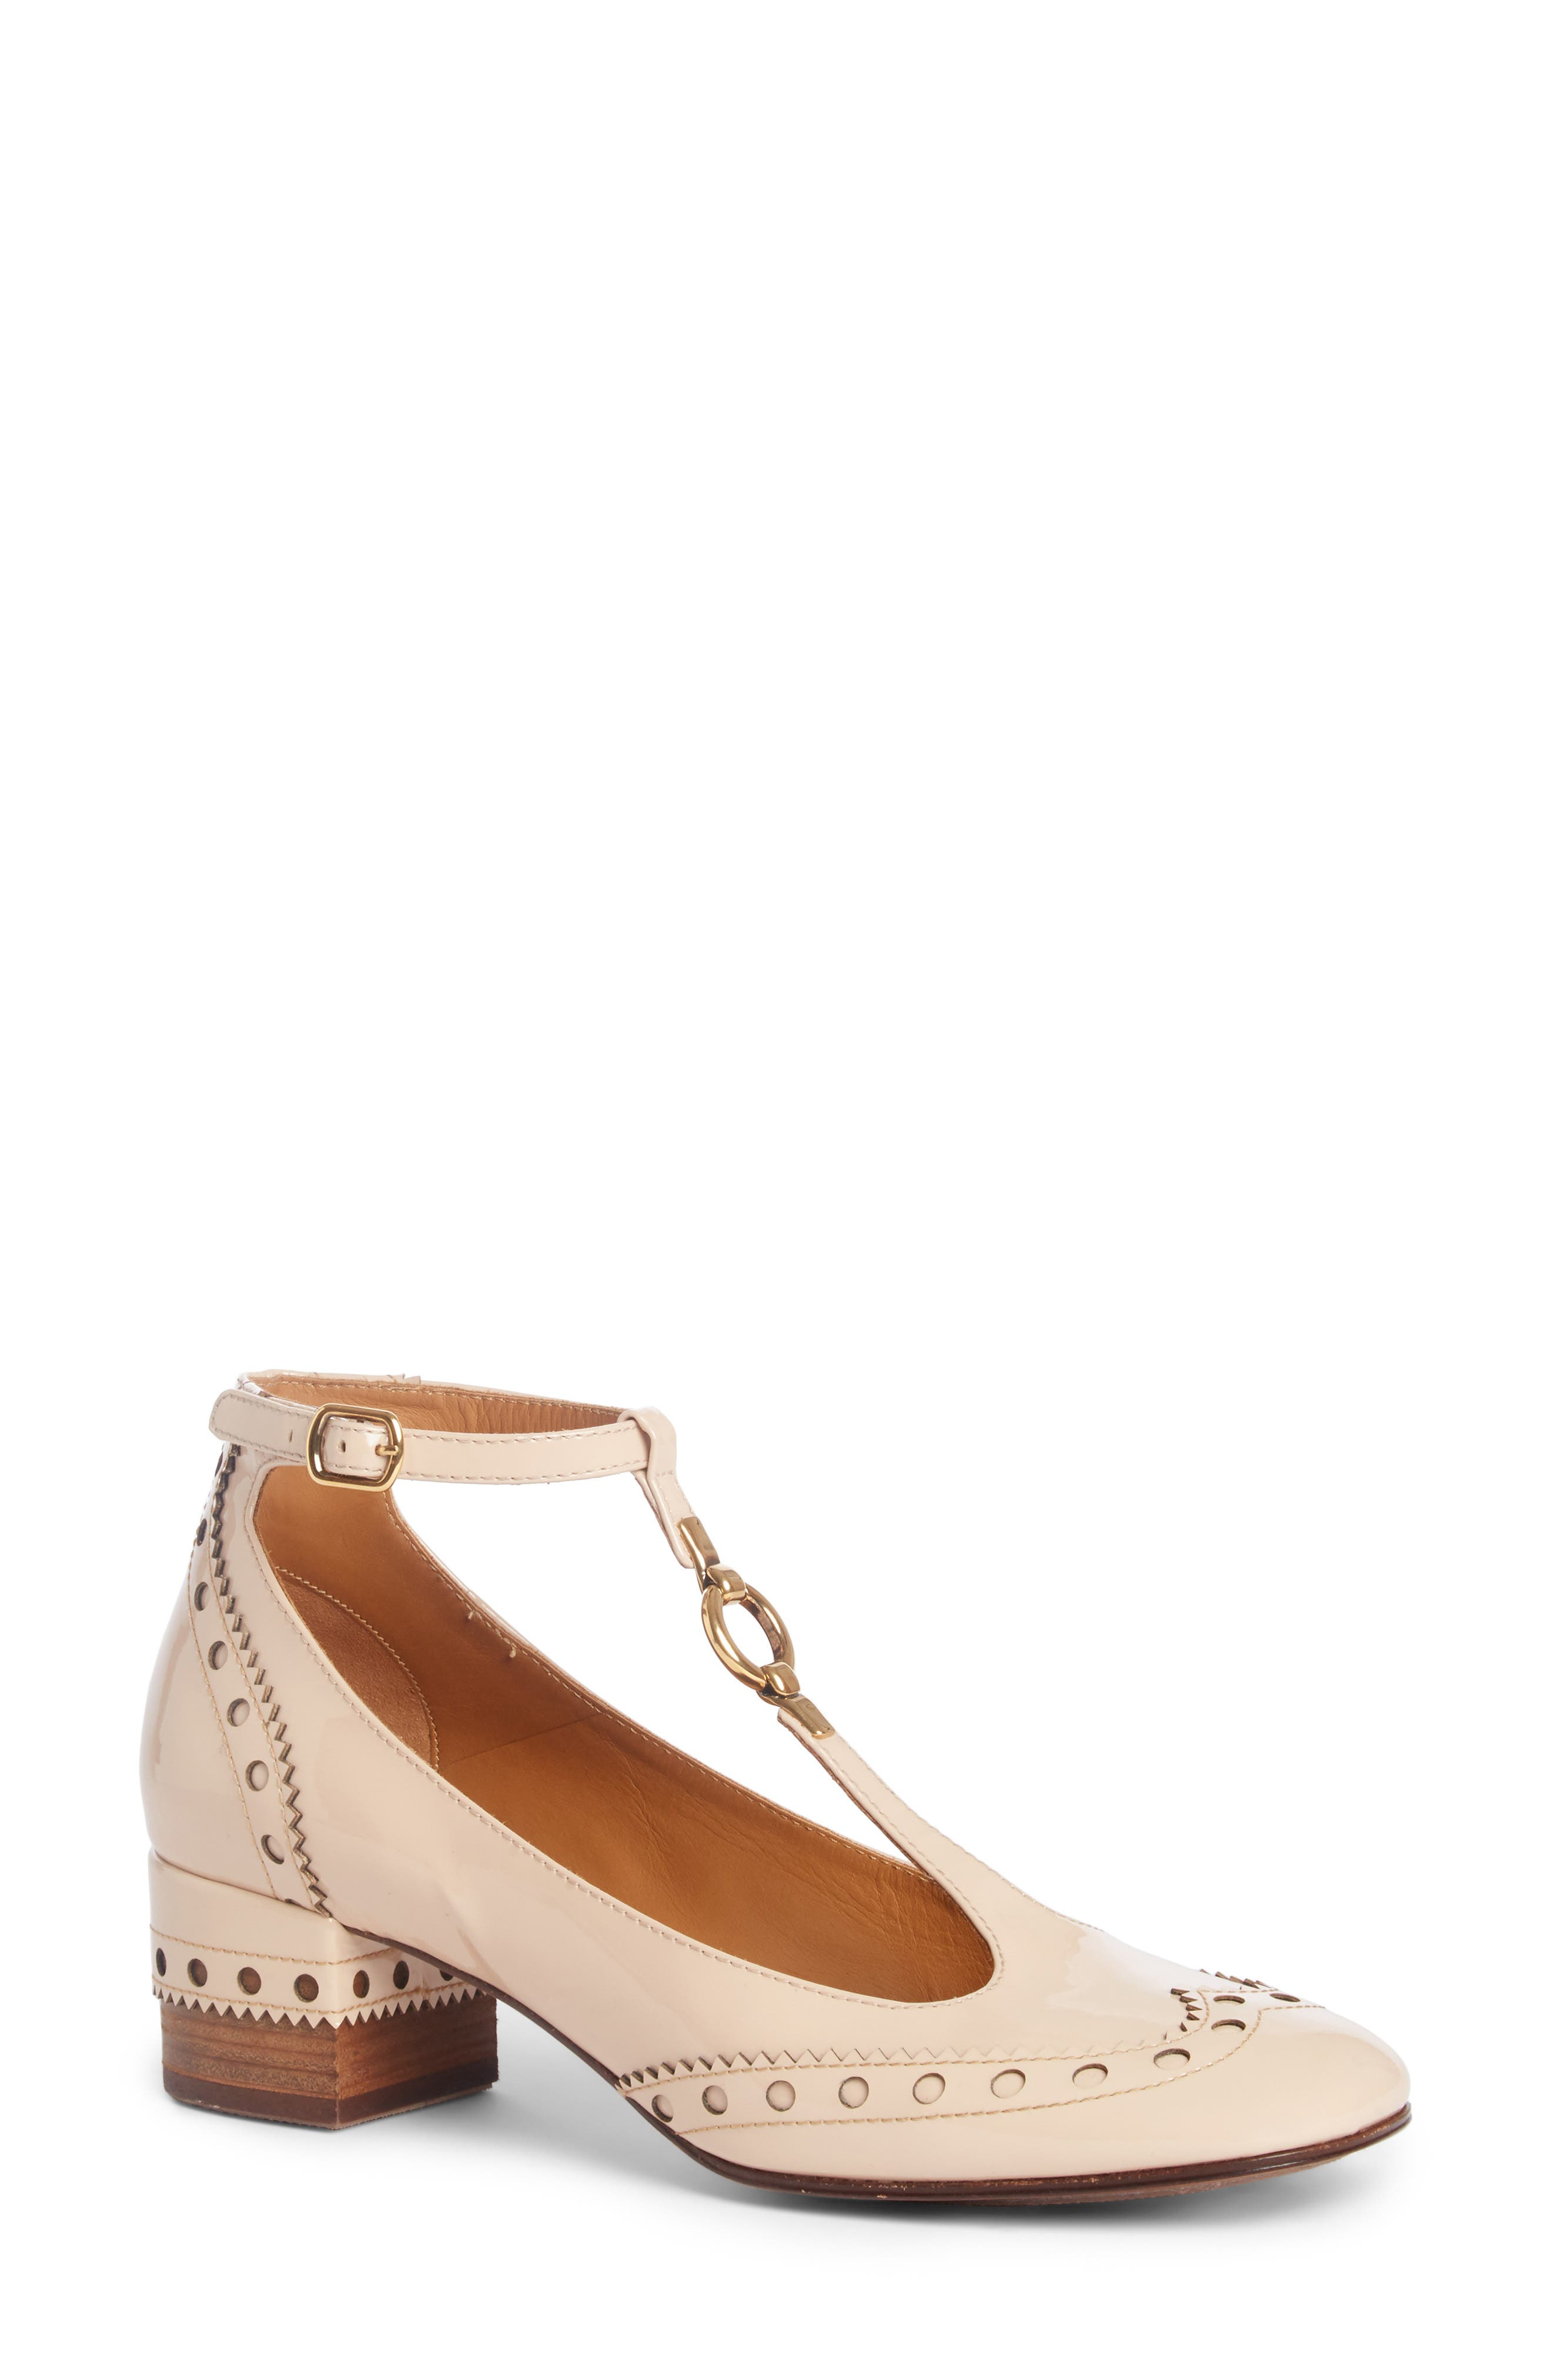 Main Image - Chloé Perry Wingtip T-Strap Pump (Women)